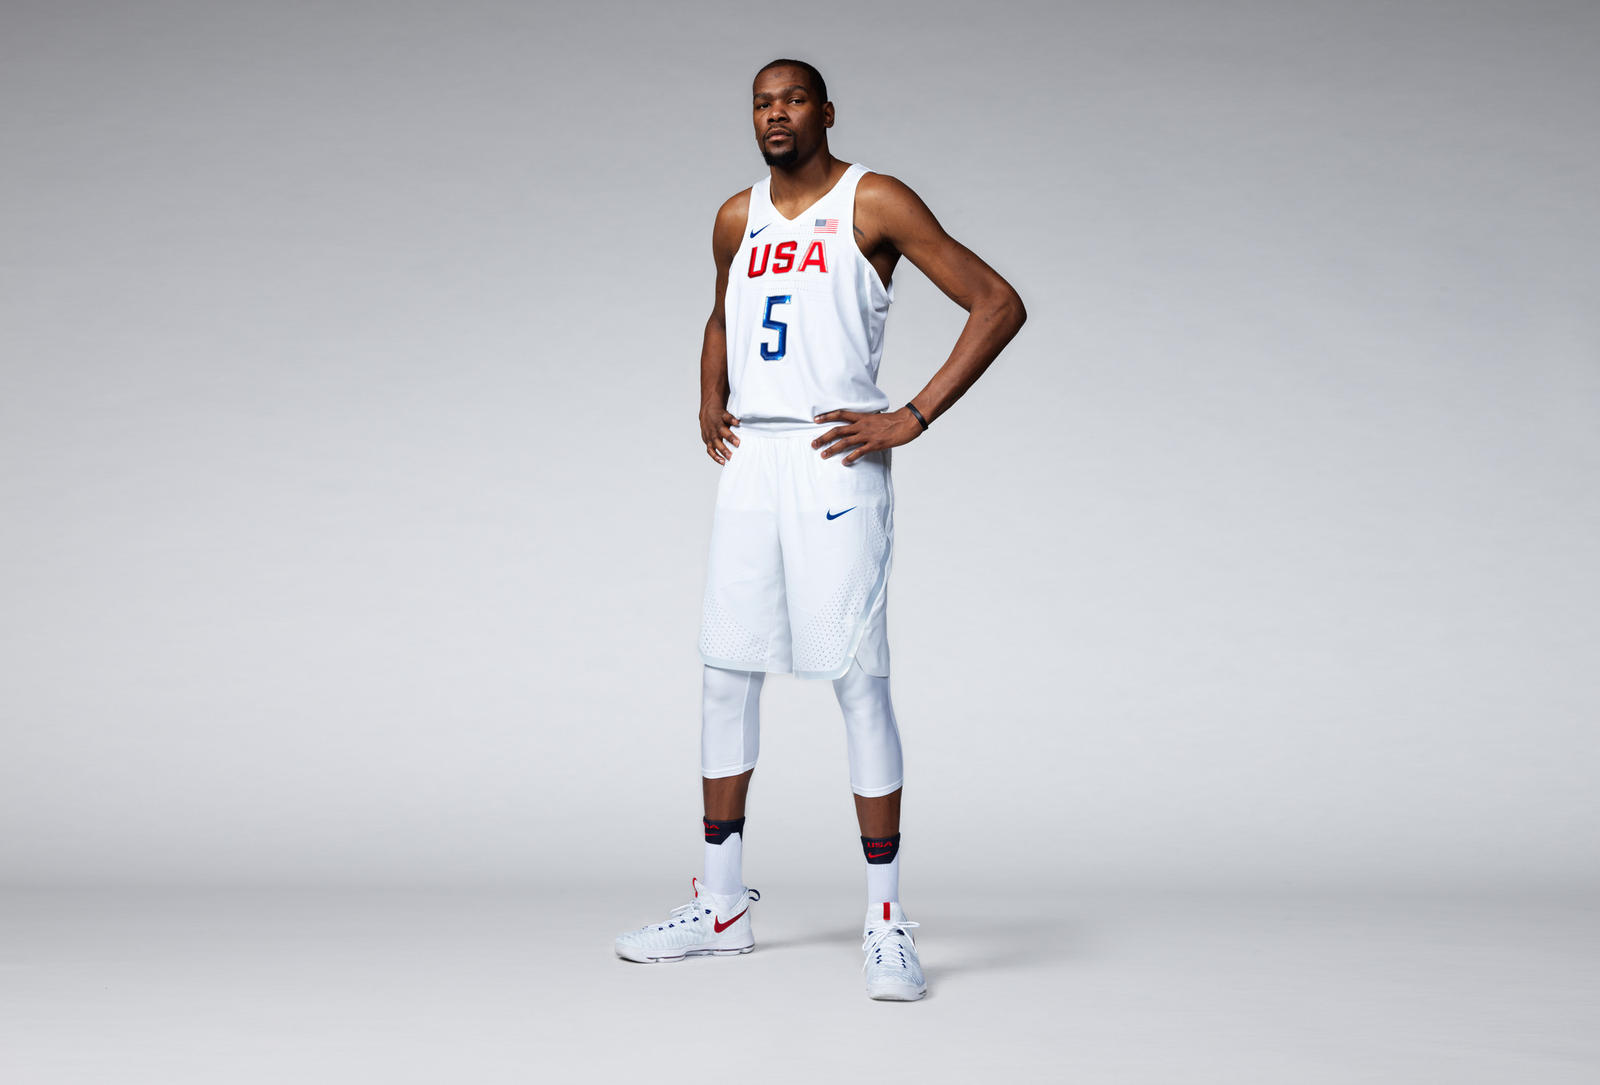 USA 2016 Nike Vapor Basketball Uniforms - Nike News